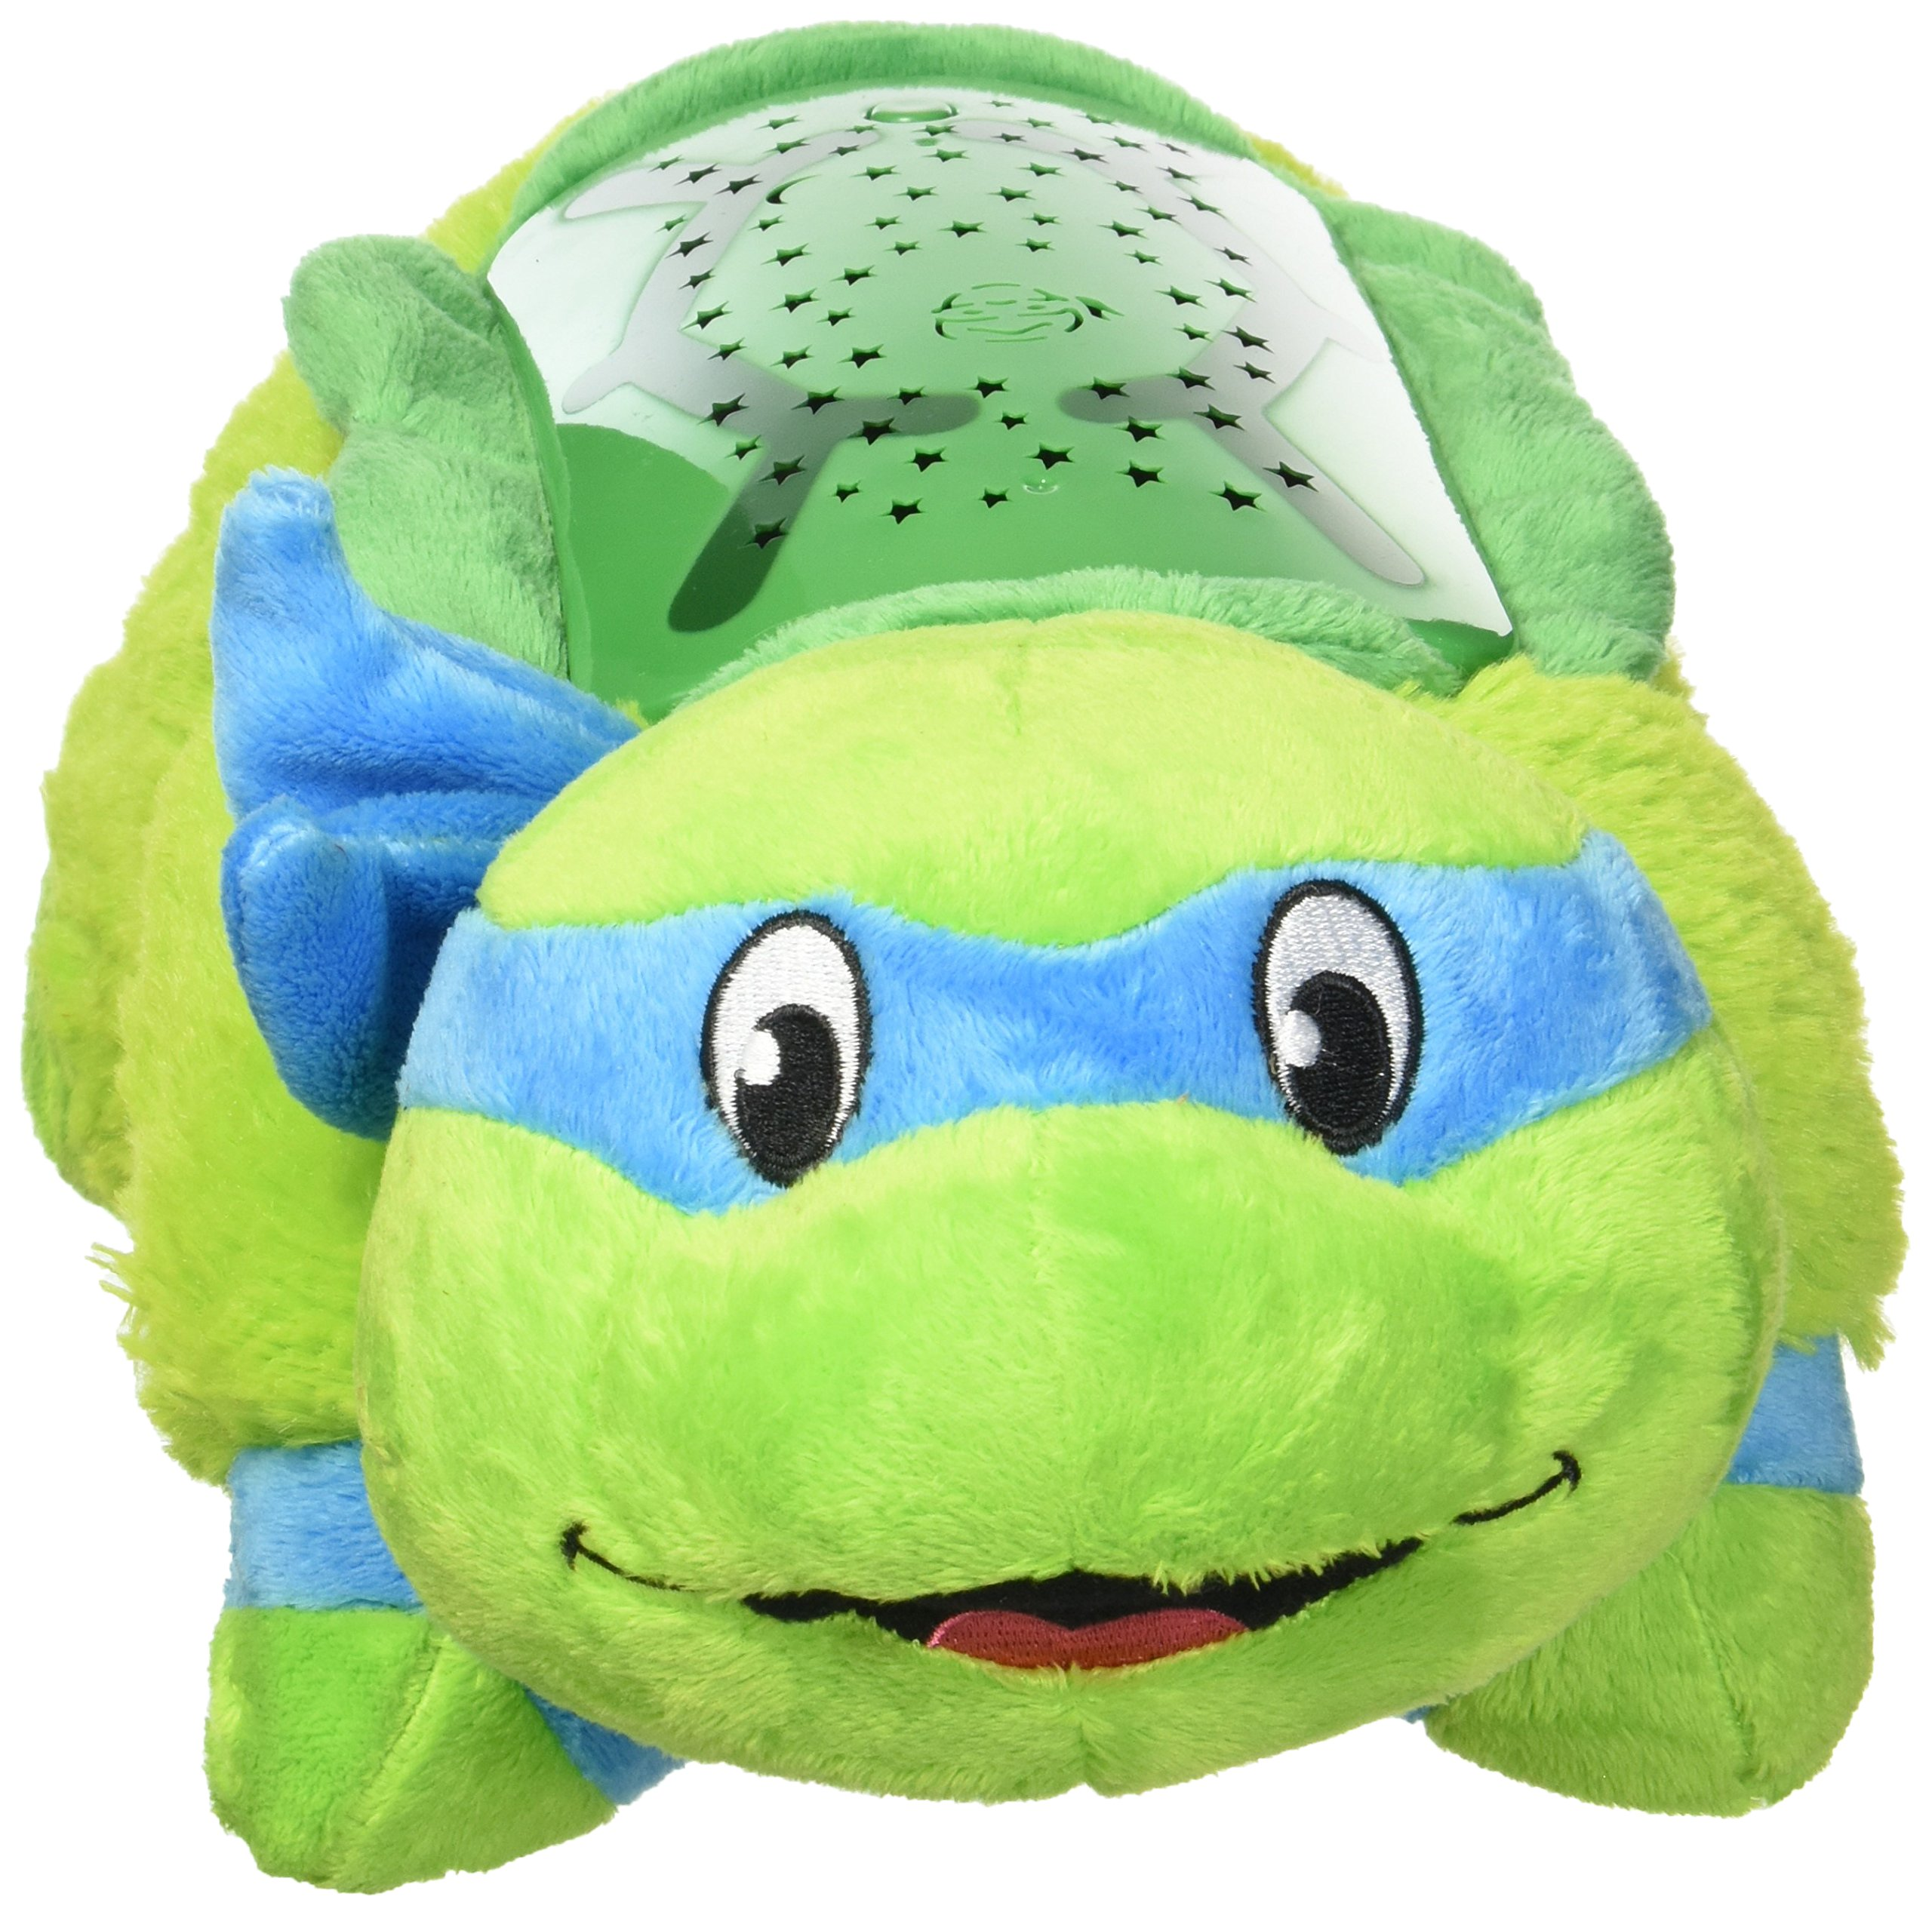 Pillow Pets Dream Lite TNT - Leonardo by Pillow Pets (Image #1)